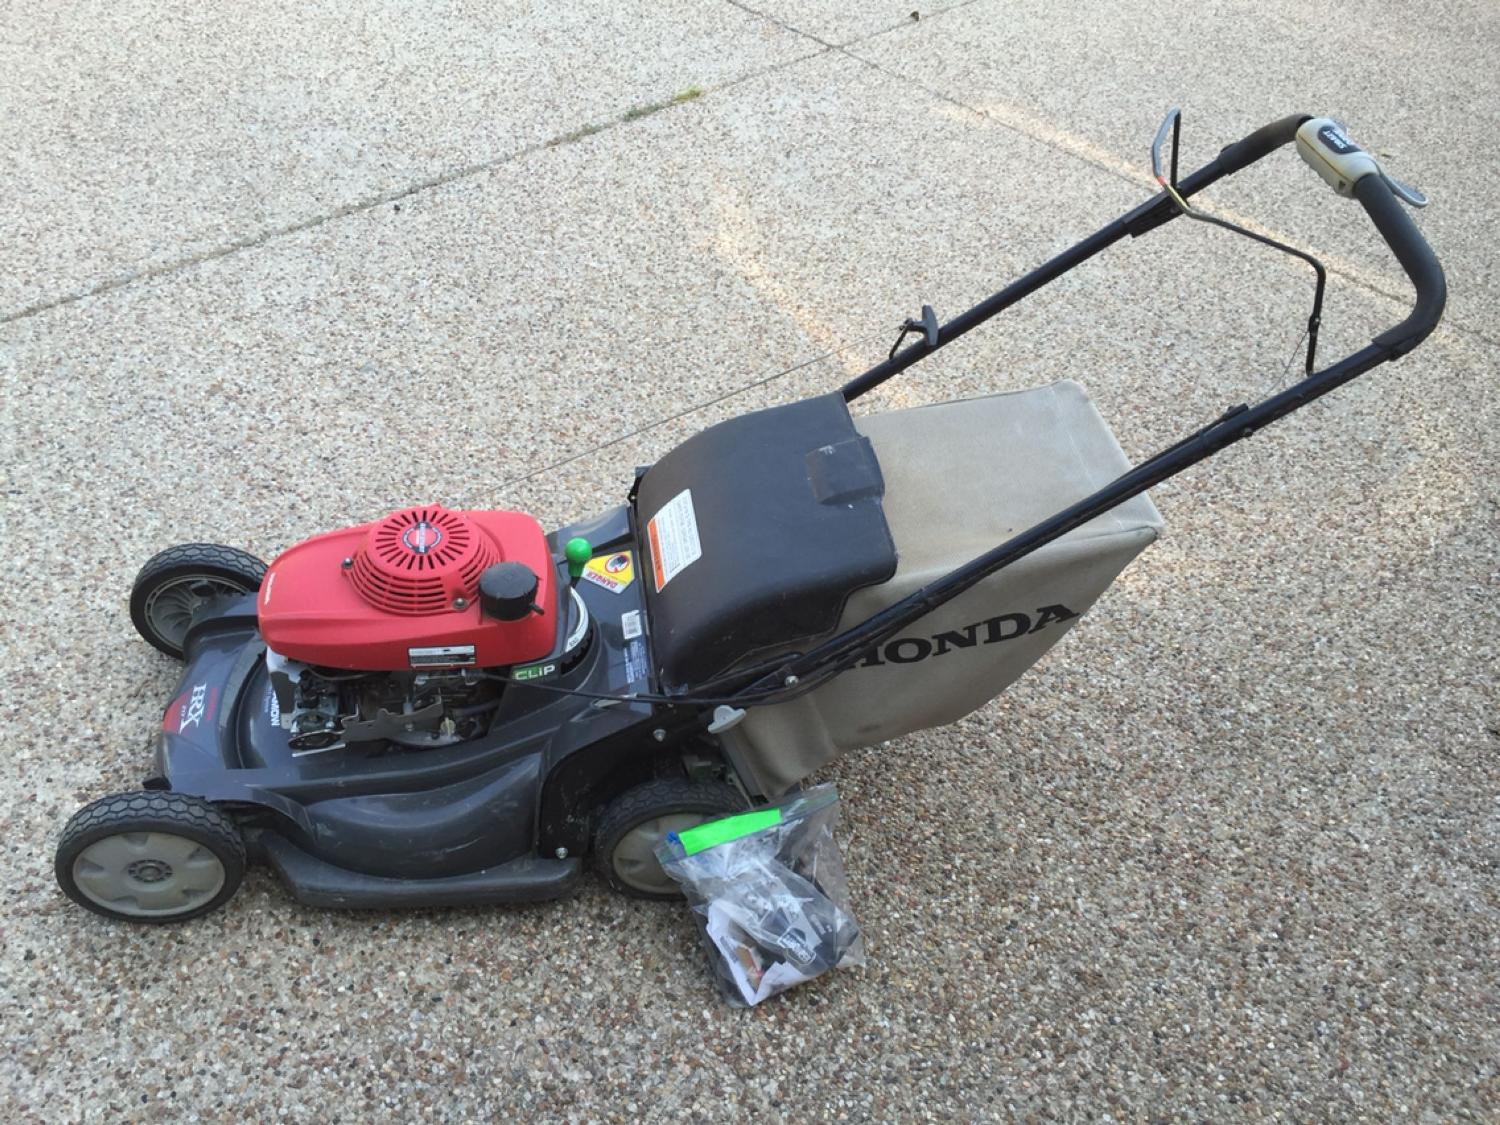 Honda Hrx 217 Versamow Lawn Mower Not Running Needs Carb Rebuilt 60 Obo Would Like Picked Up Today